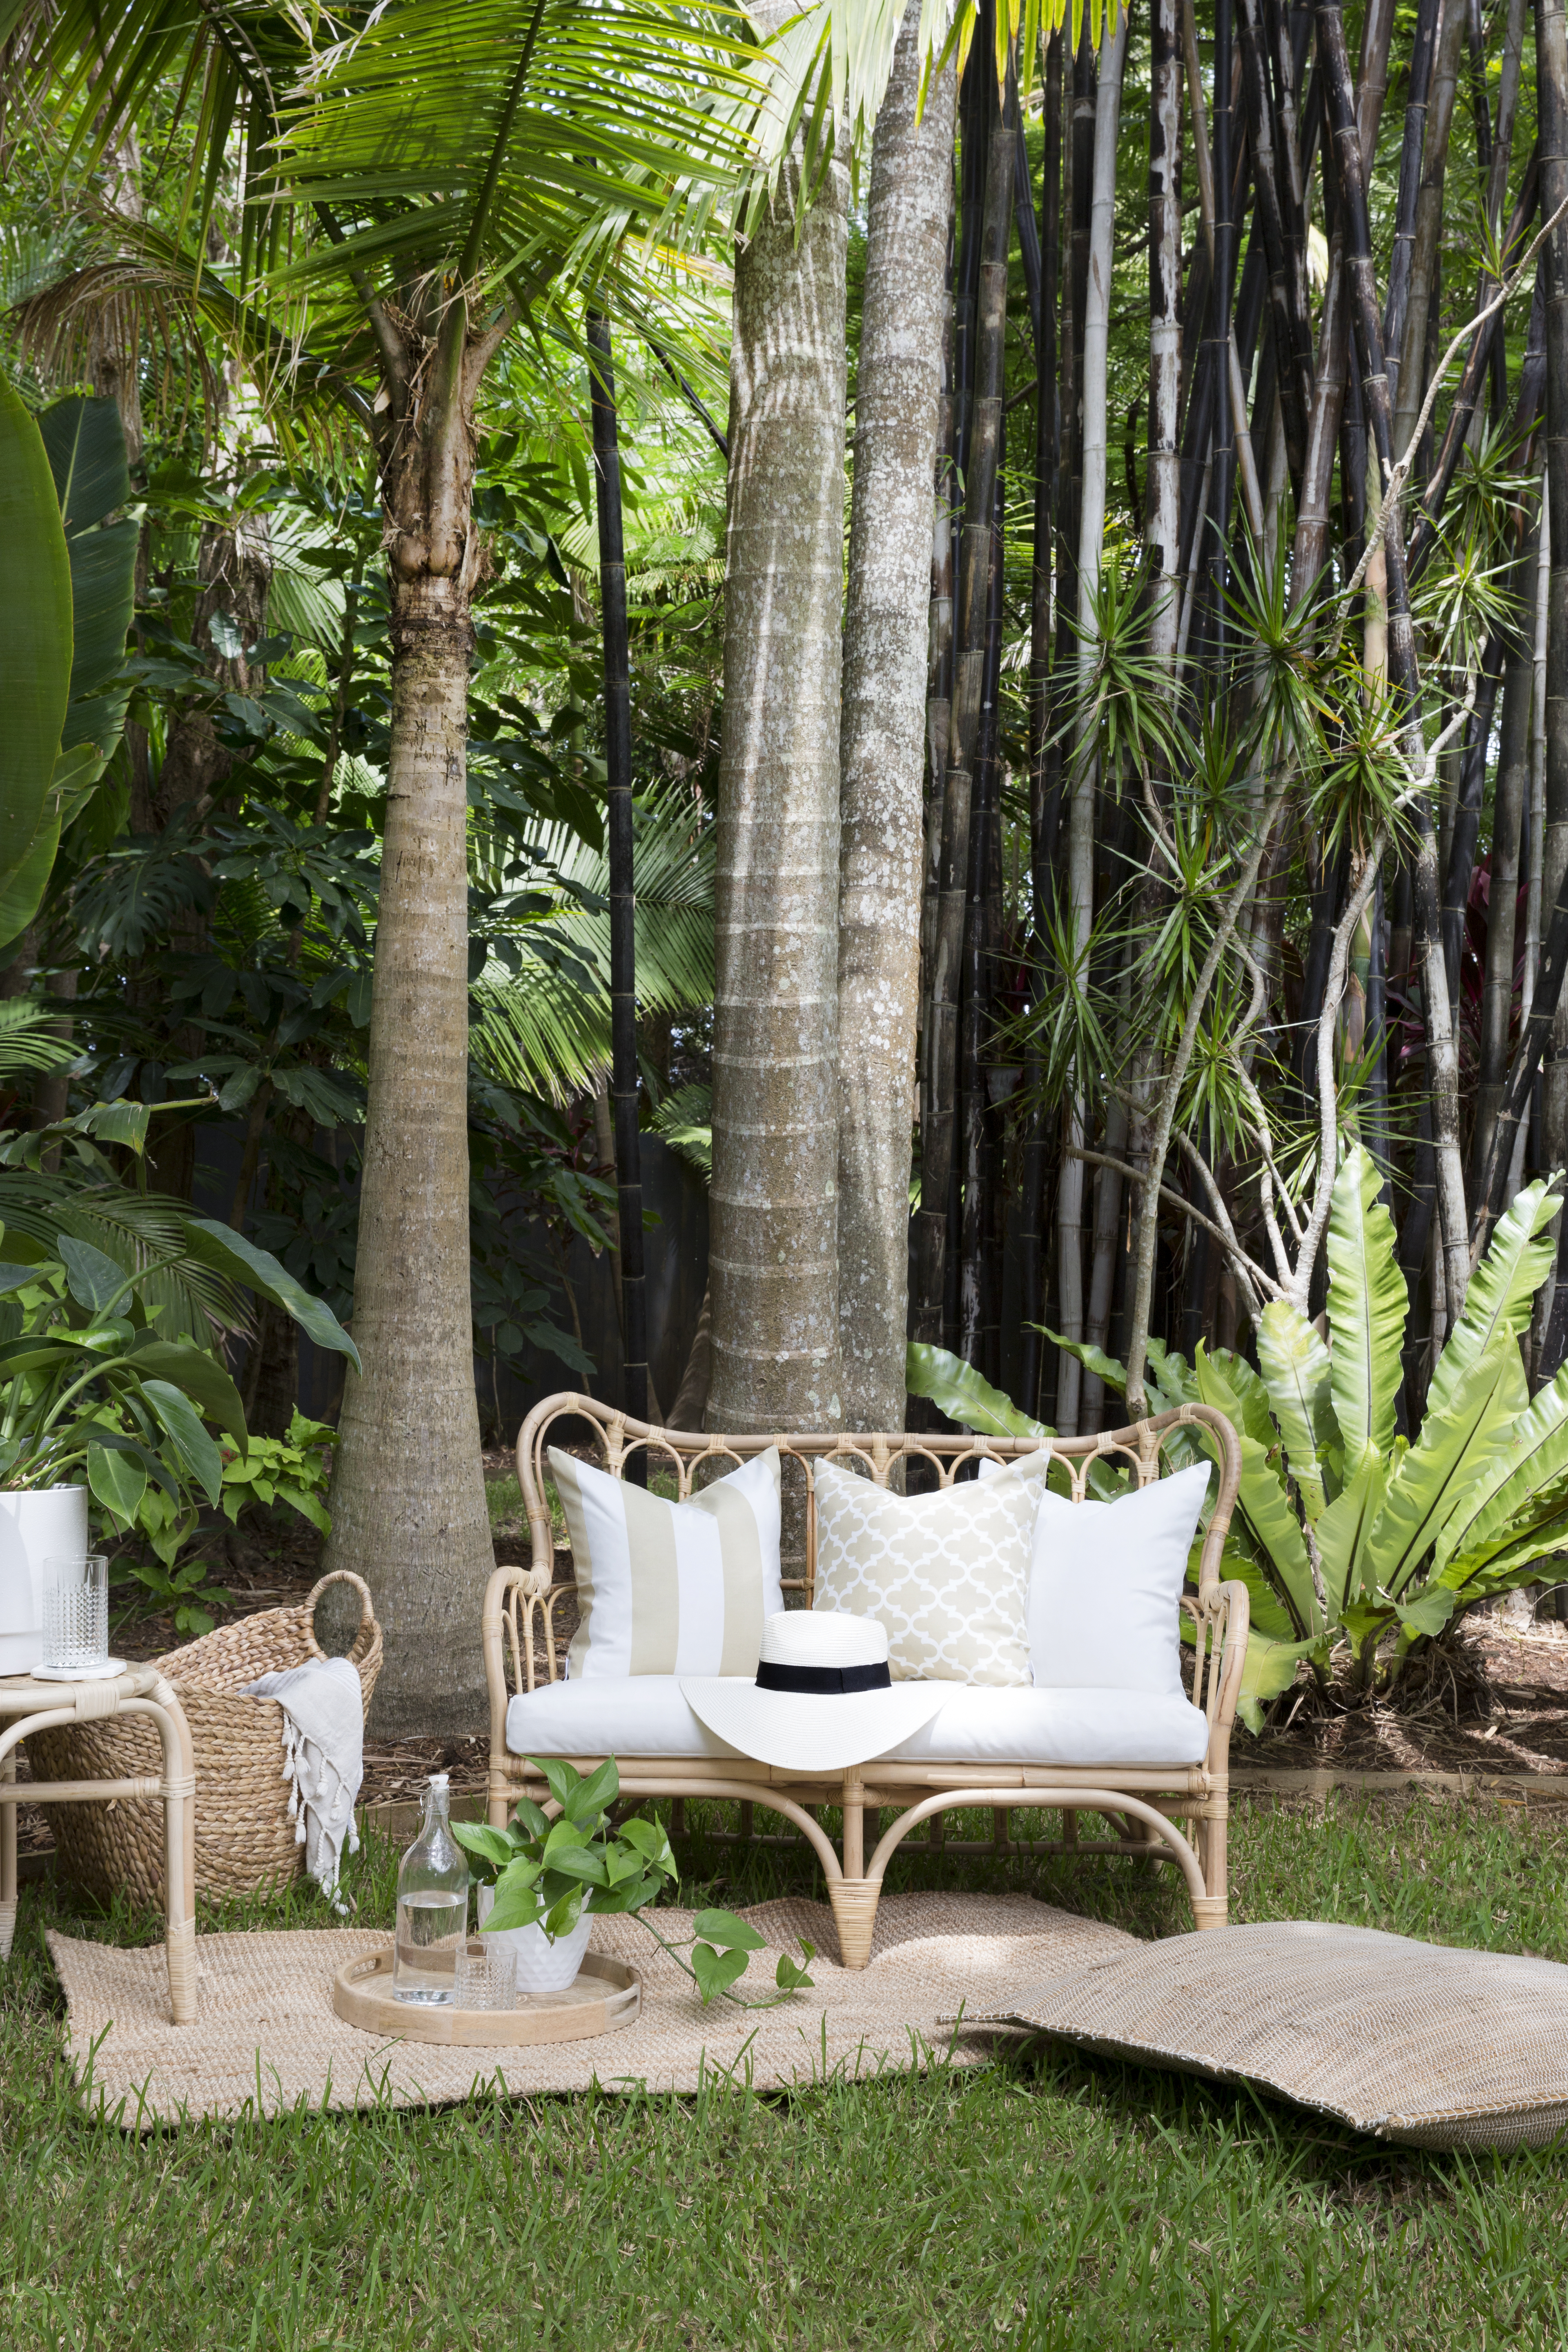 Onland Outdoor Furniture Great Outdoor Cushions Australia